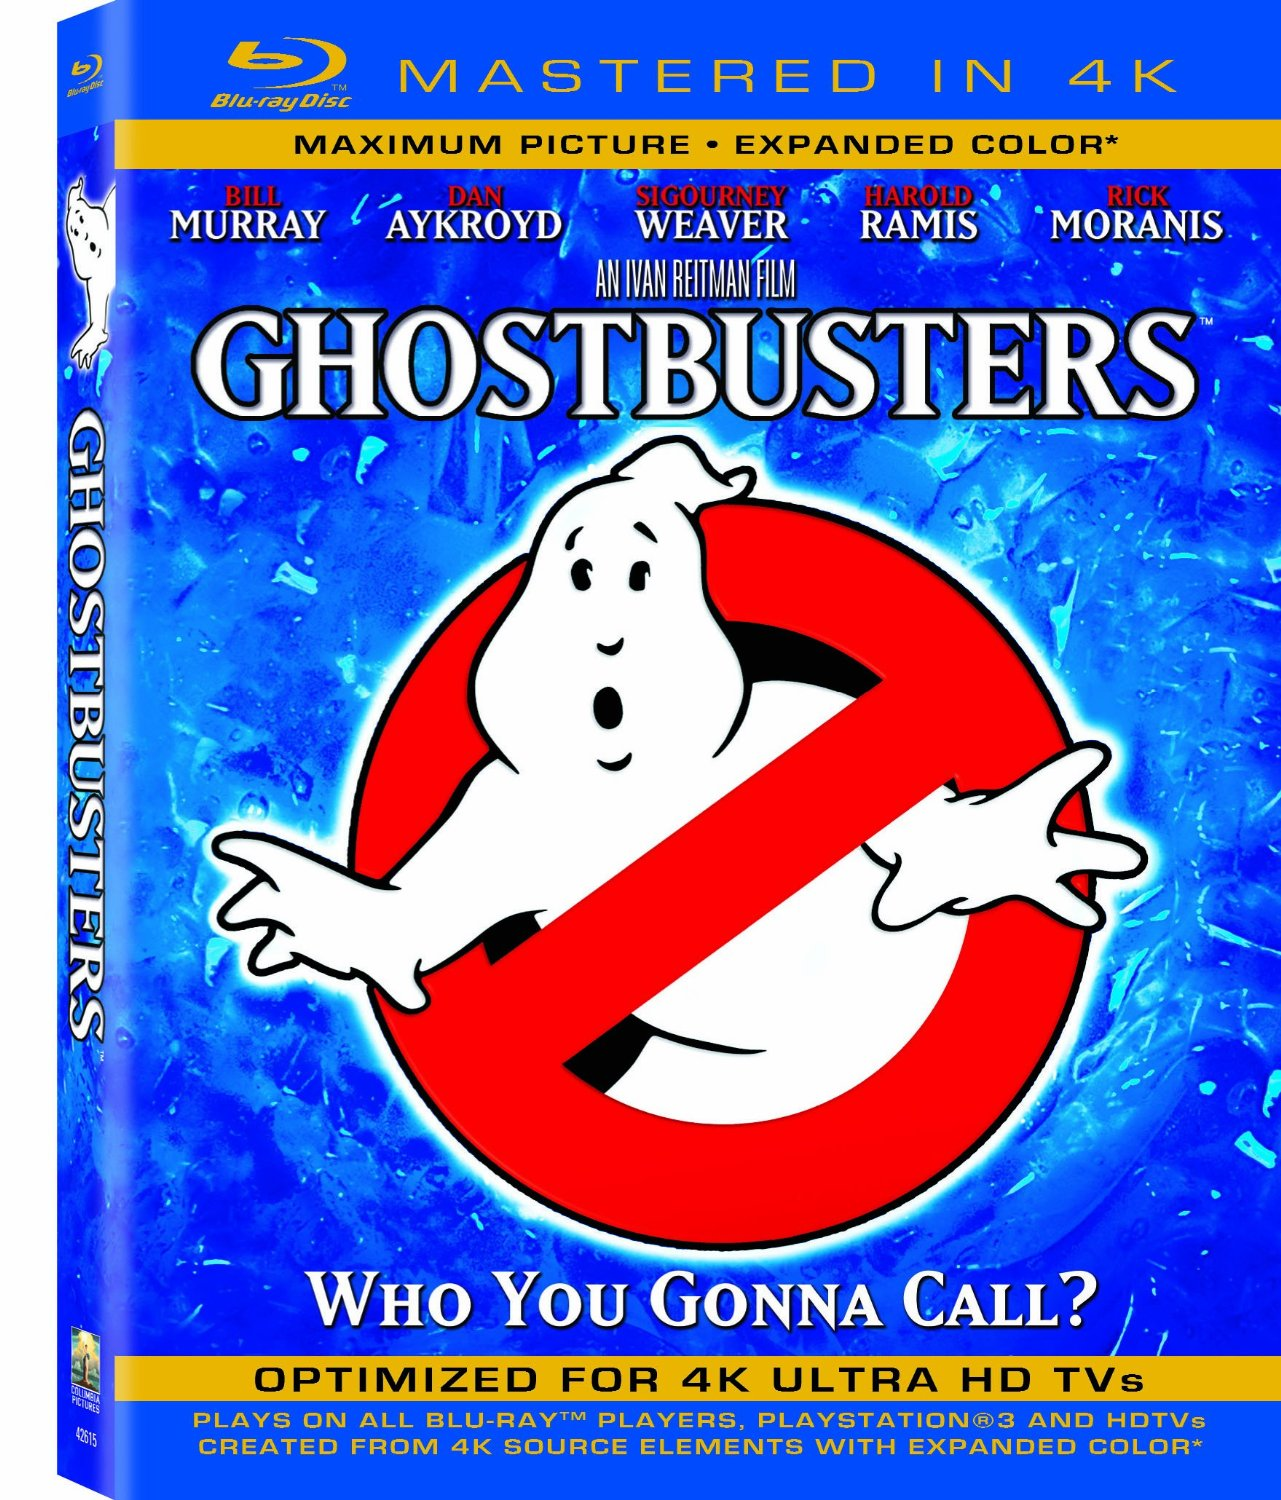 Original Ghostbusters Films Coming to UHD! But What Does That Mean?